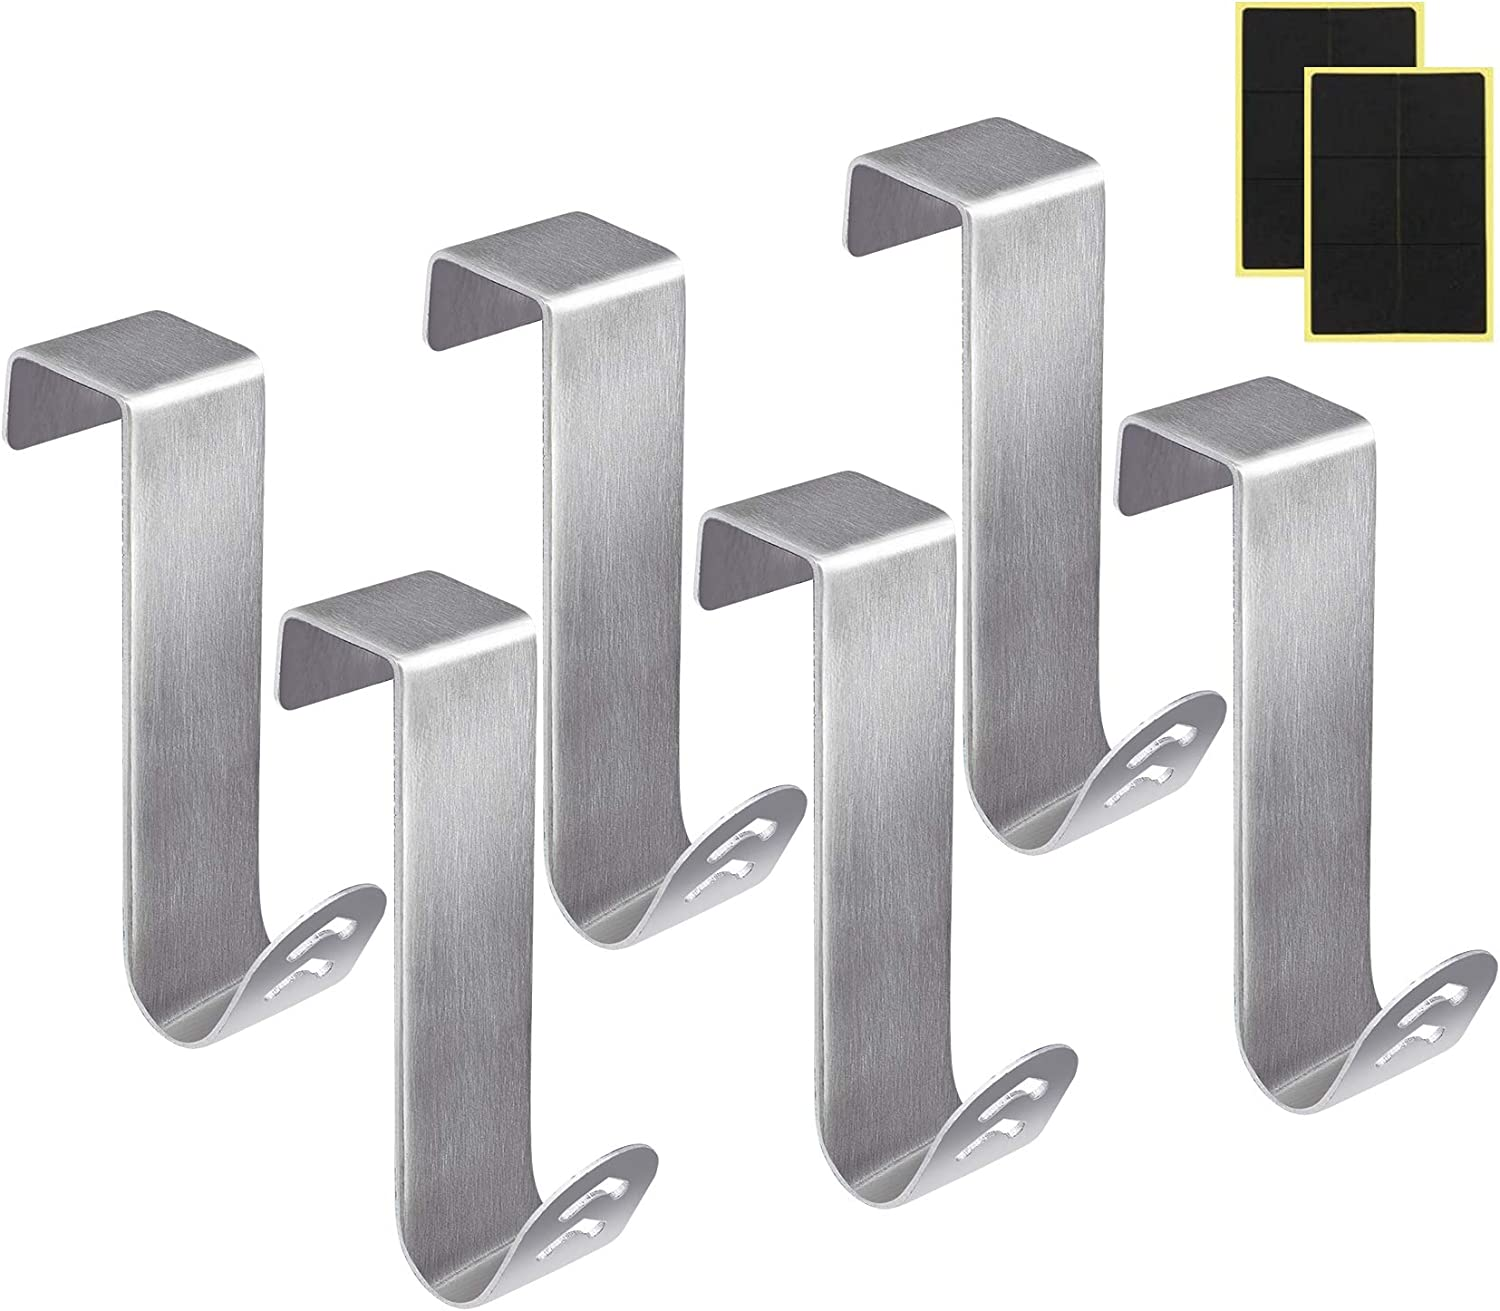 Lemonfilter 6 Pack Over The Door Hooks Stainless Doo 67% OFF Max 43% OFF of fixed price Steel